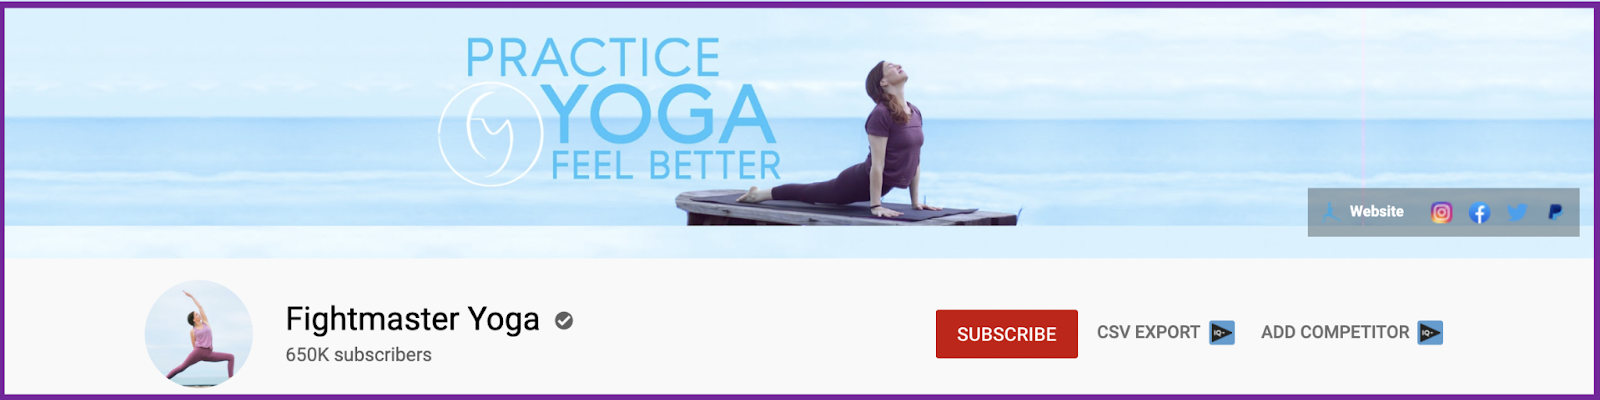 Screenshot-of-Fightmaster-Yoga's-YouTube-cool-channel-art